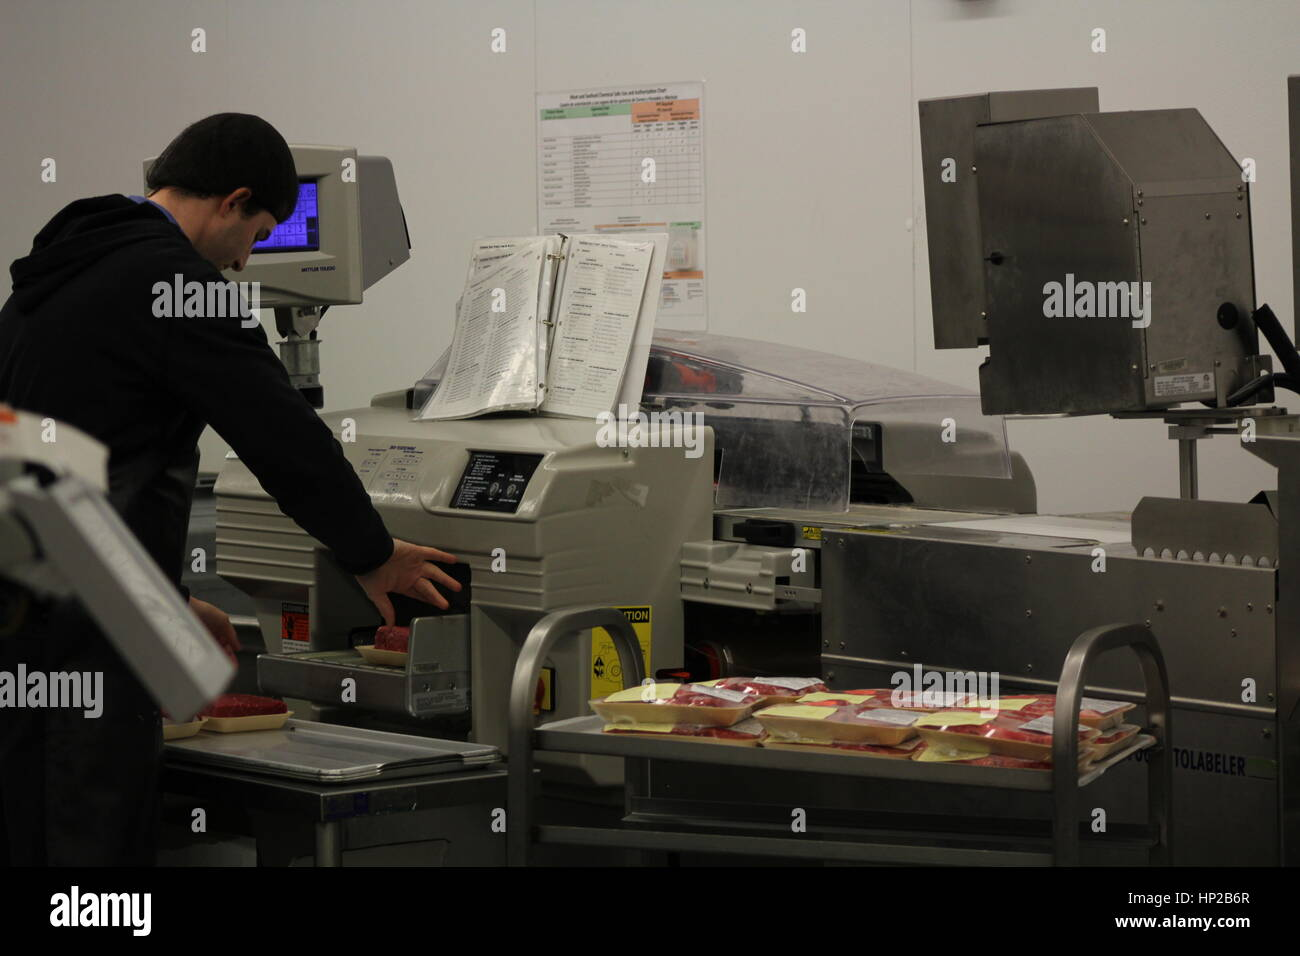 Minimum wage worker packages meat that has been produced by factory farms. - Stock Image